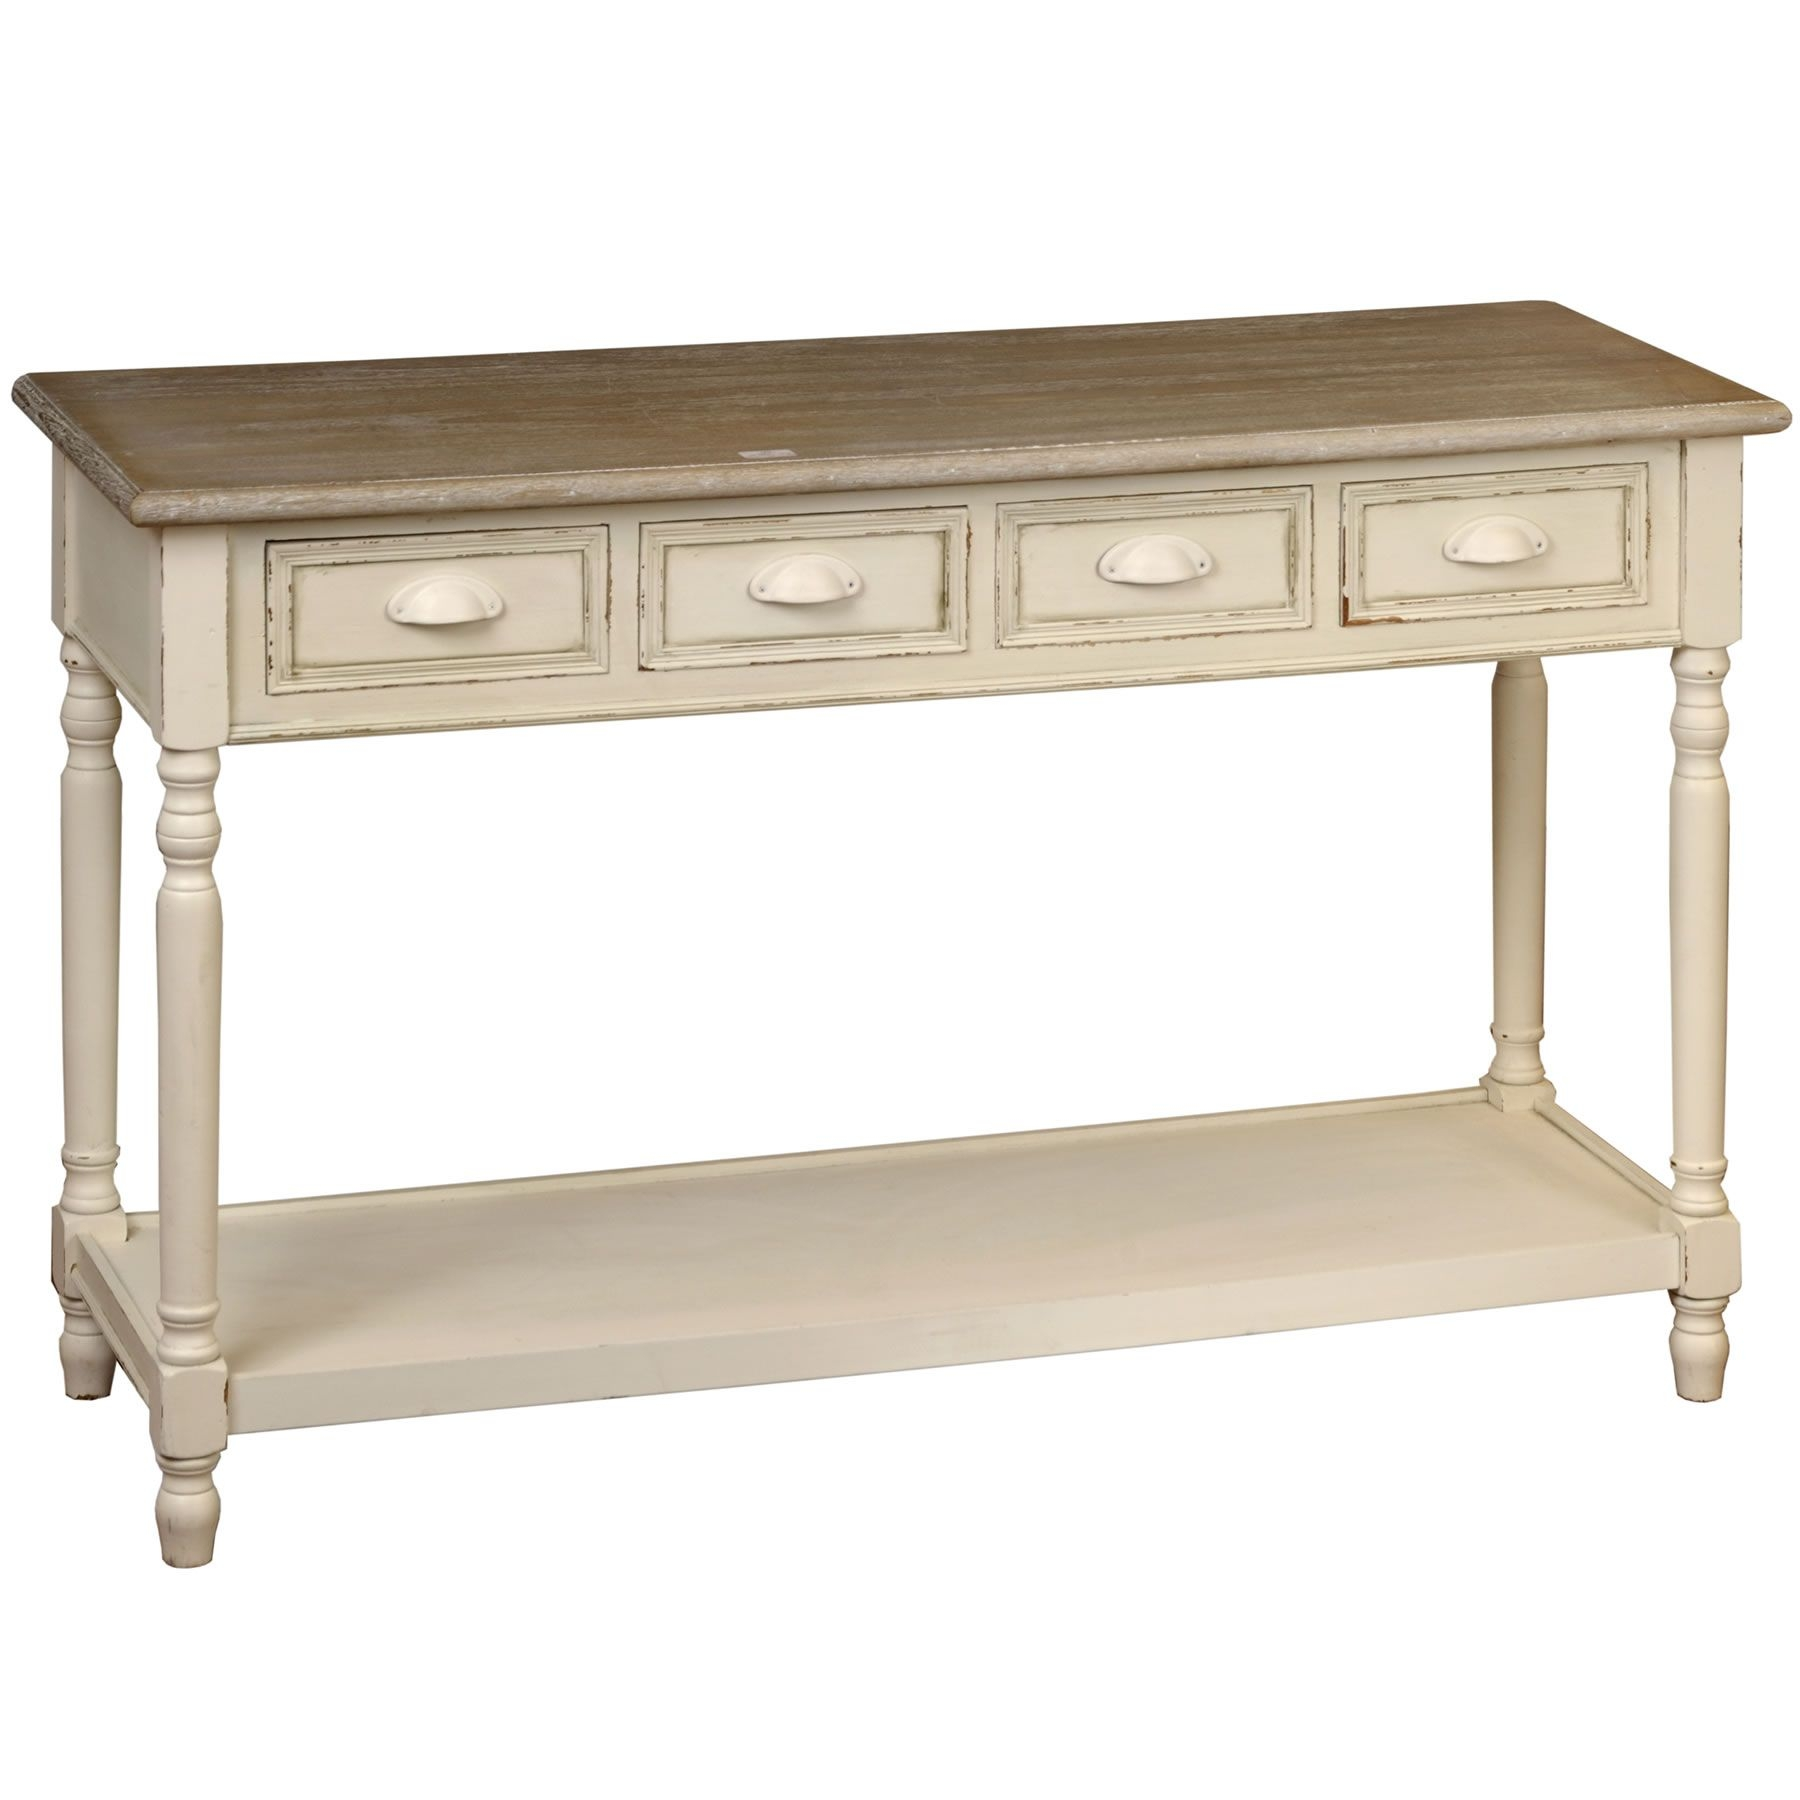 Shabby Chic Console Table, Shabby Chic Side Table, Console .